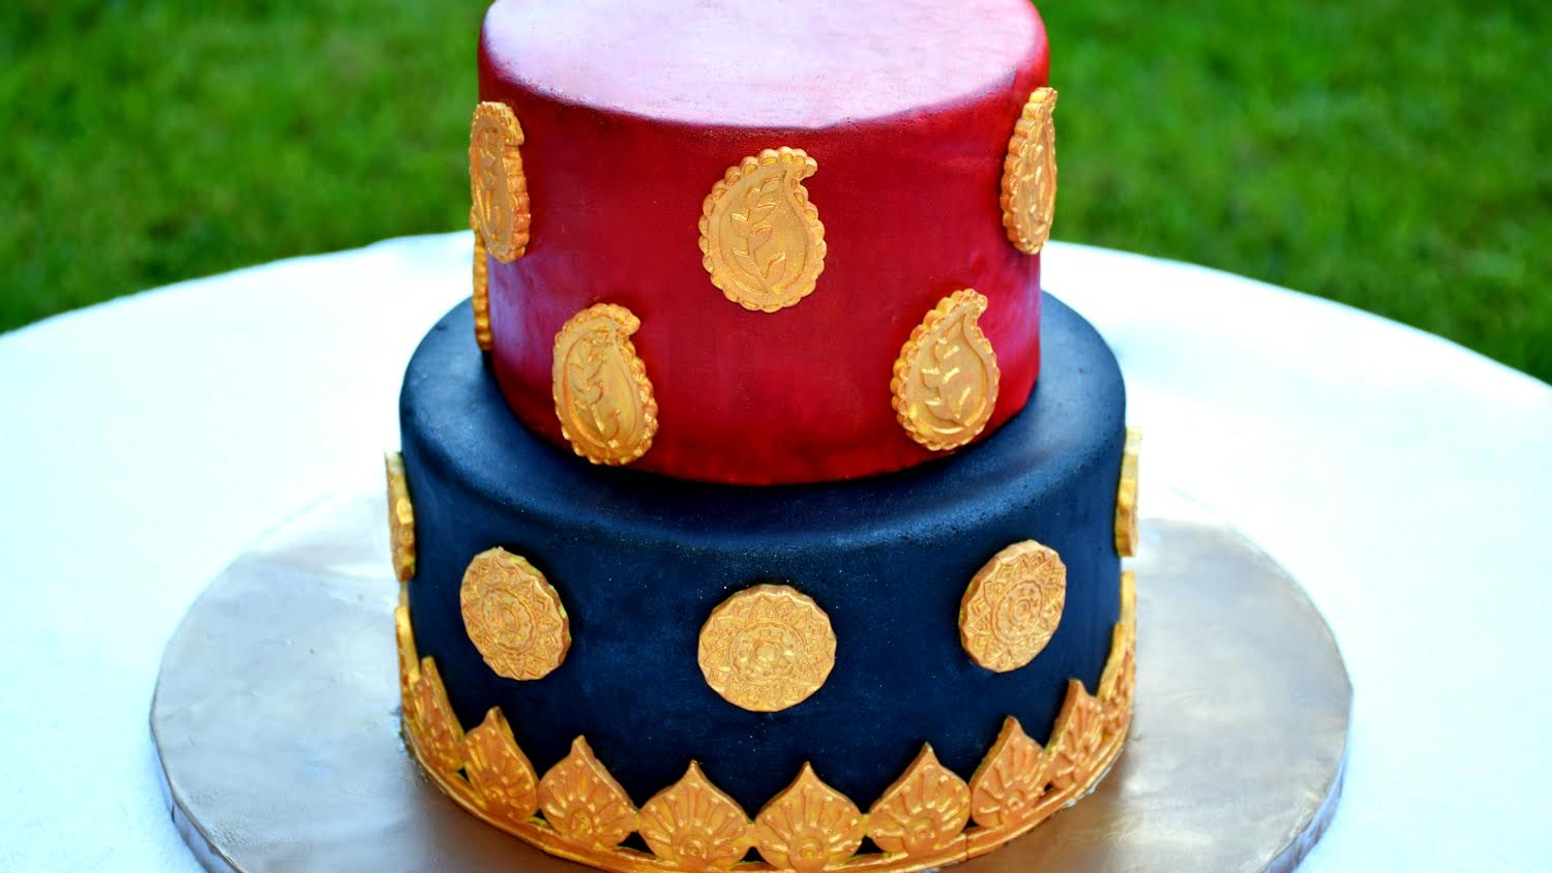 Sugar Creations Molds Make Exotic Cakes In Minutes By Deepa